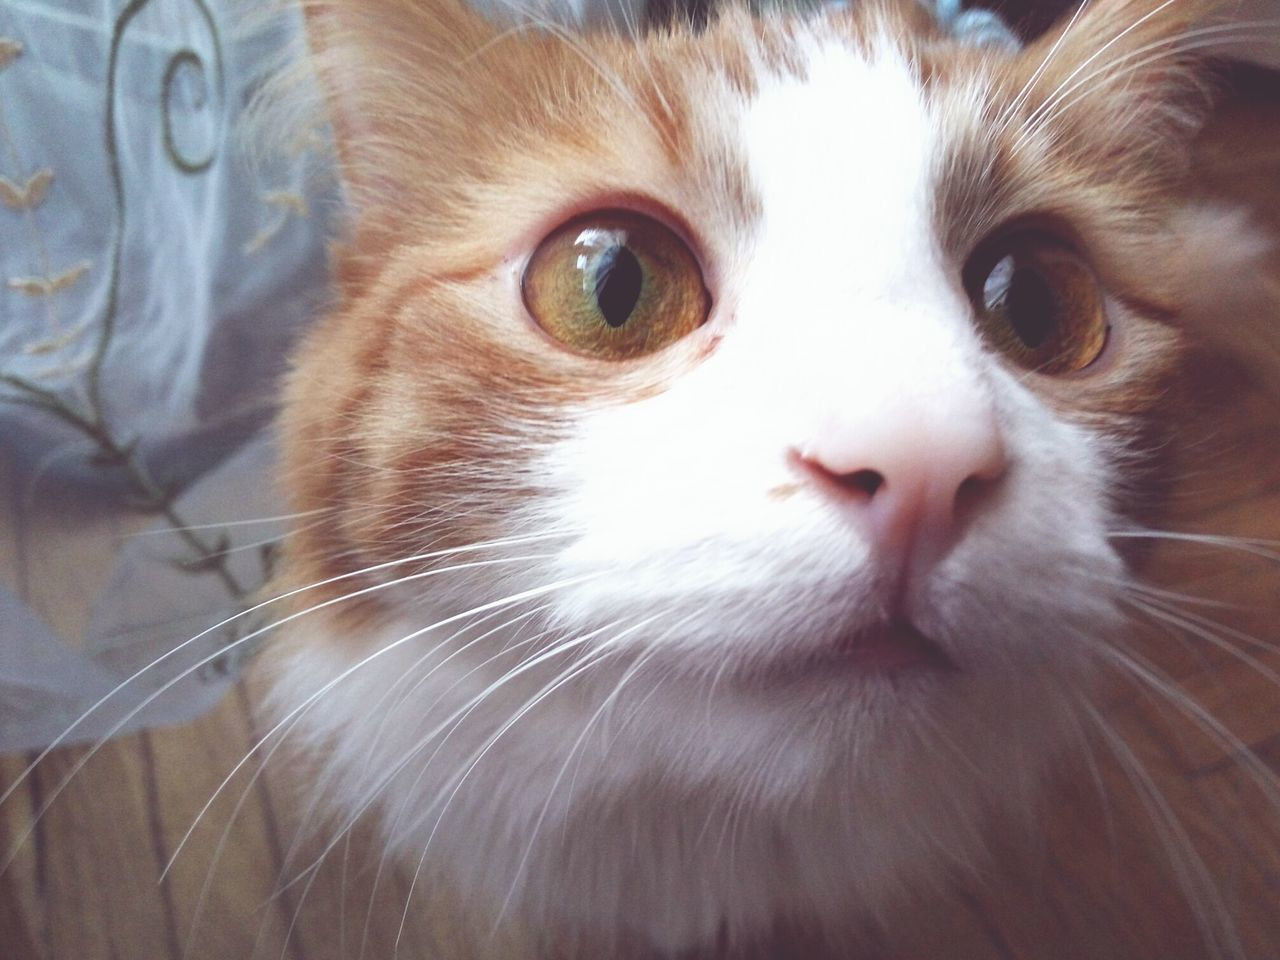 pets, domestic animals, animal themes, domestic cat, one animal, mammal, whisker, feline, close-up, no people, looking at camera, indoors, portrait, day